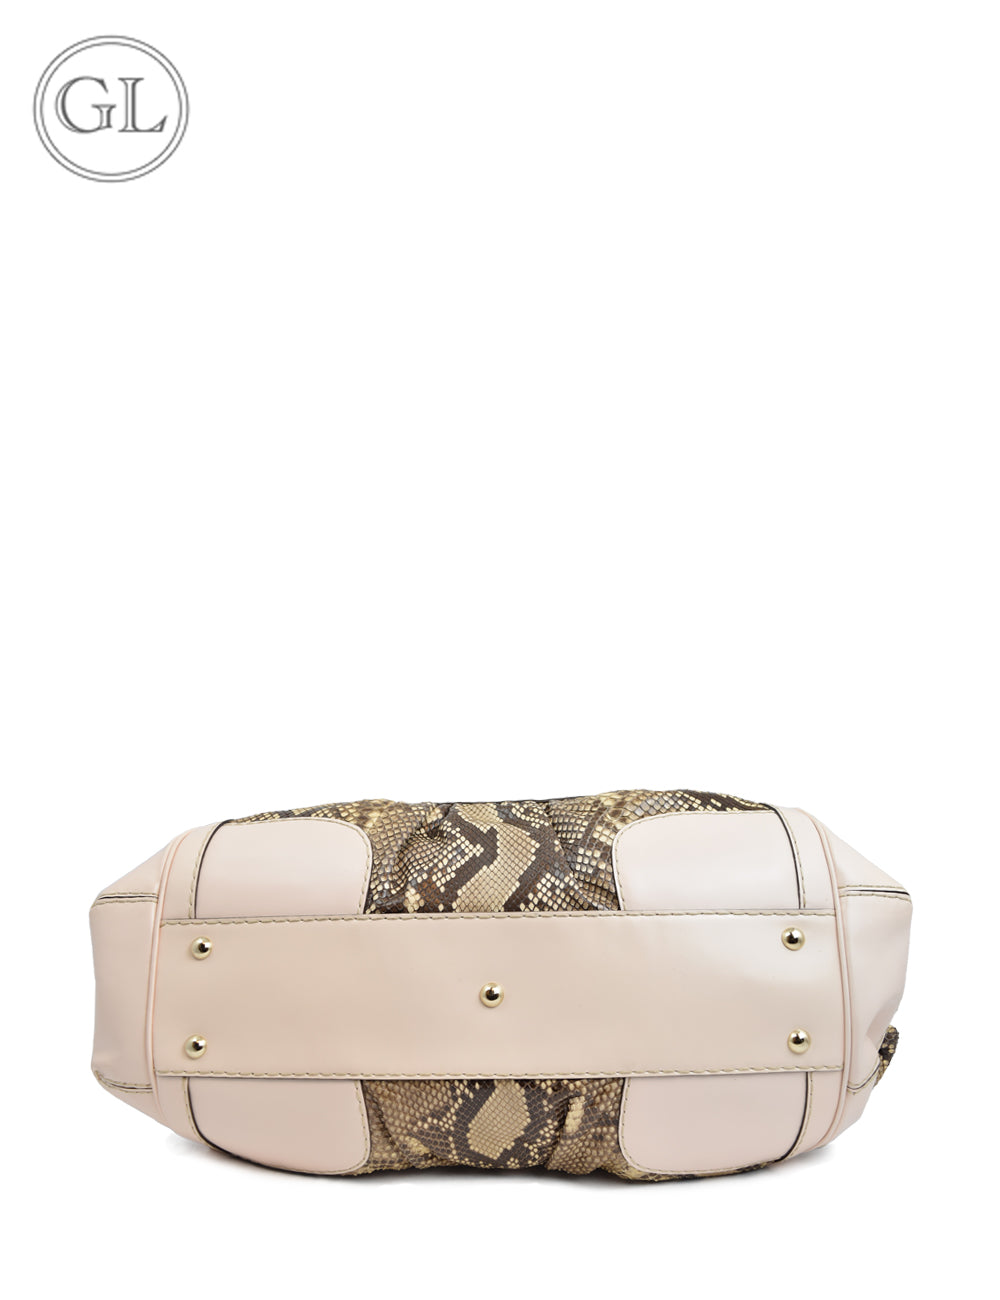 Gucci Light Pink and Python Leather Handbag